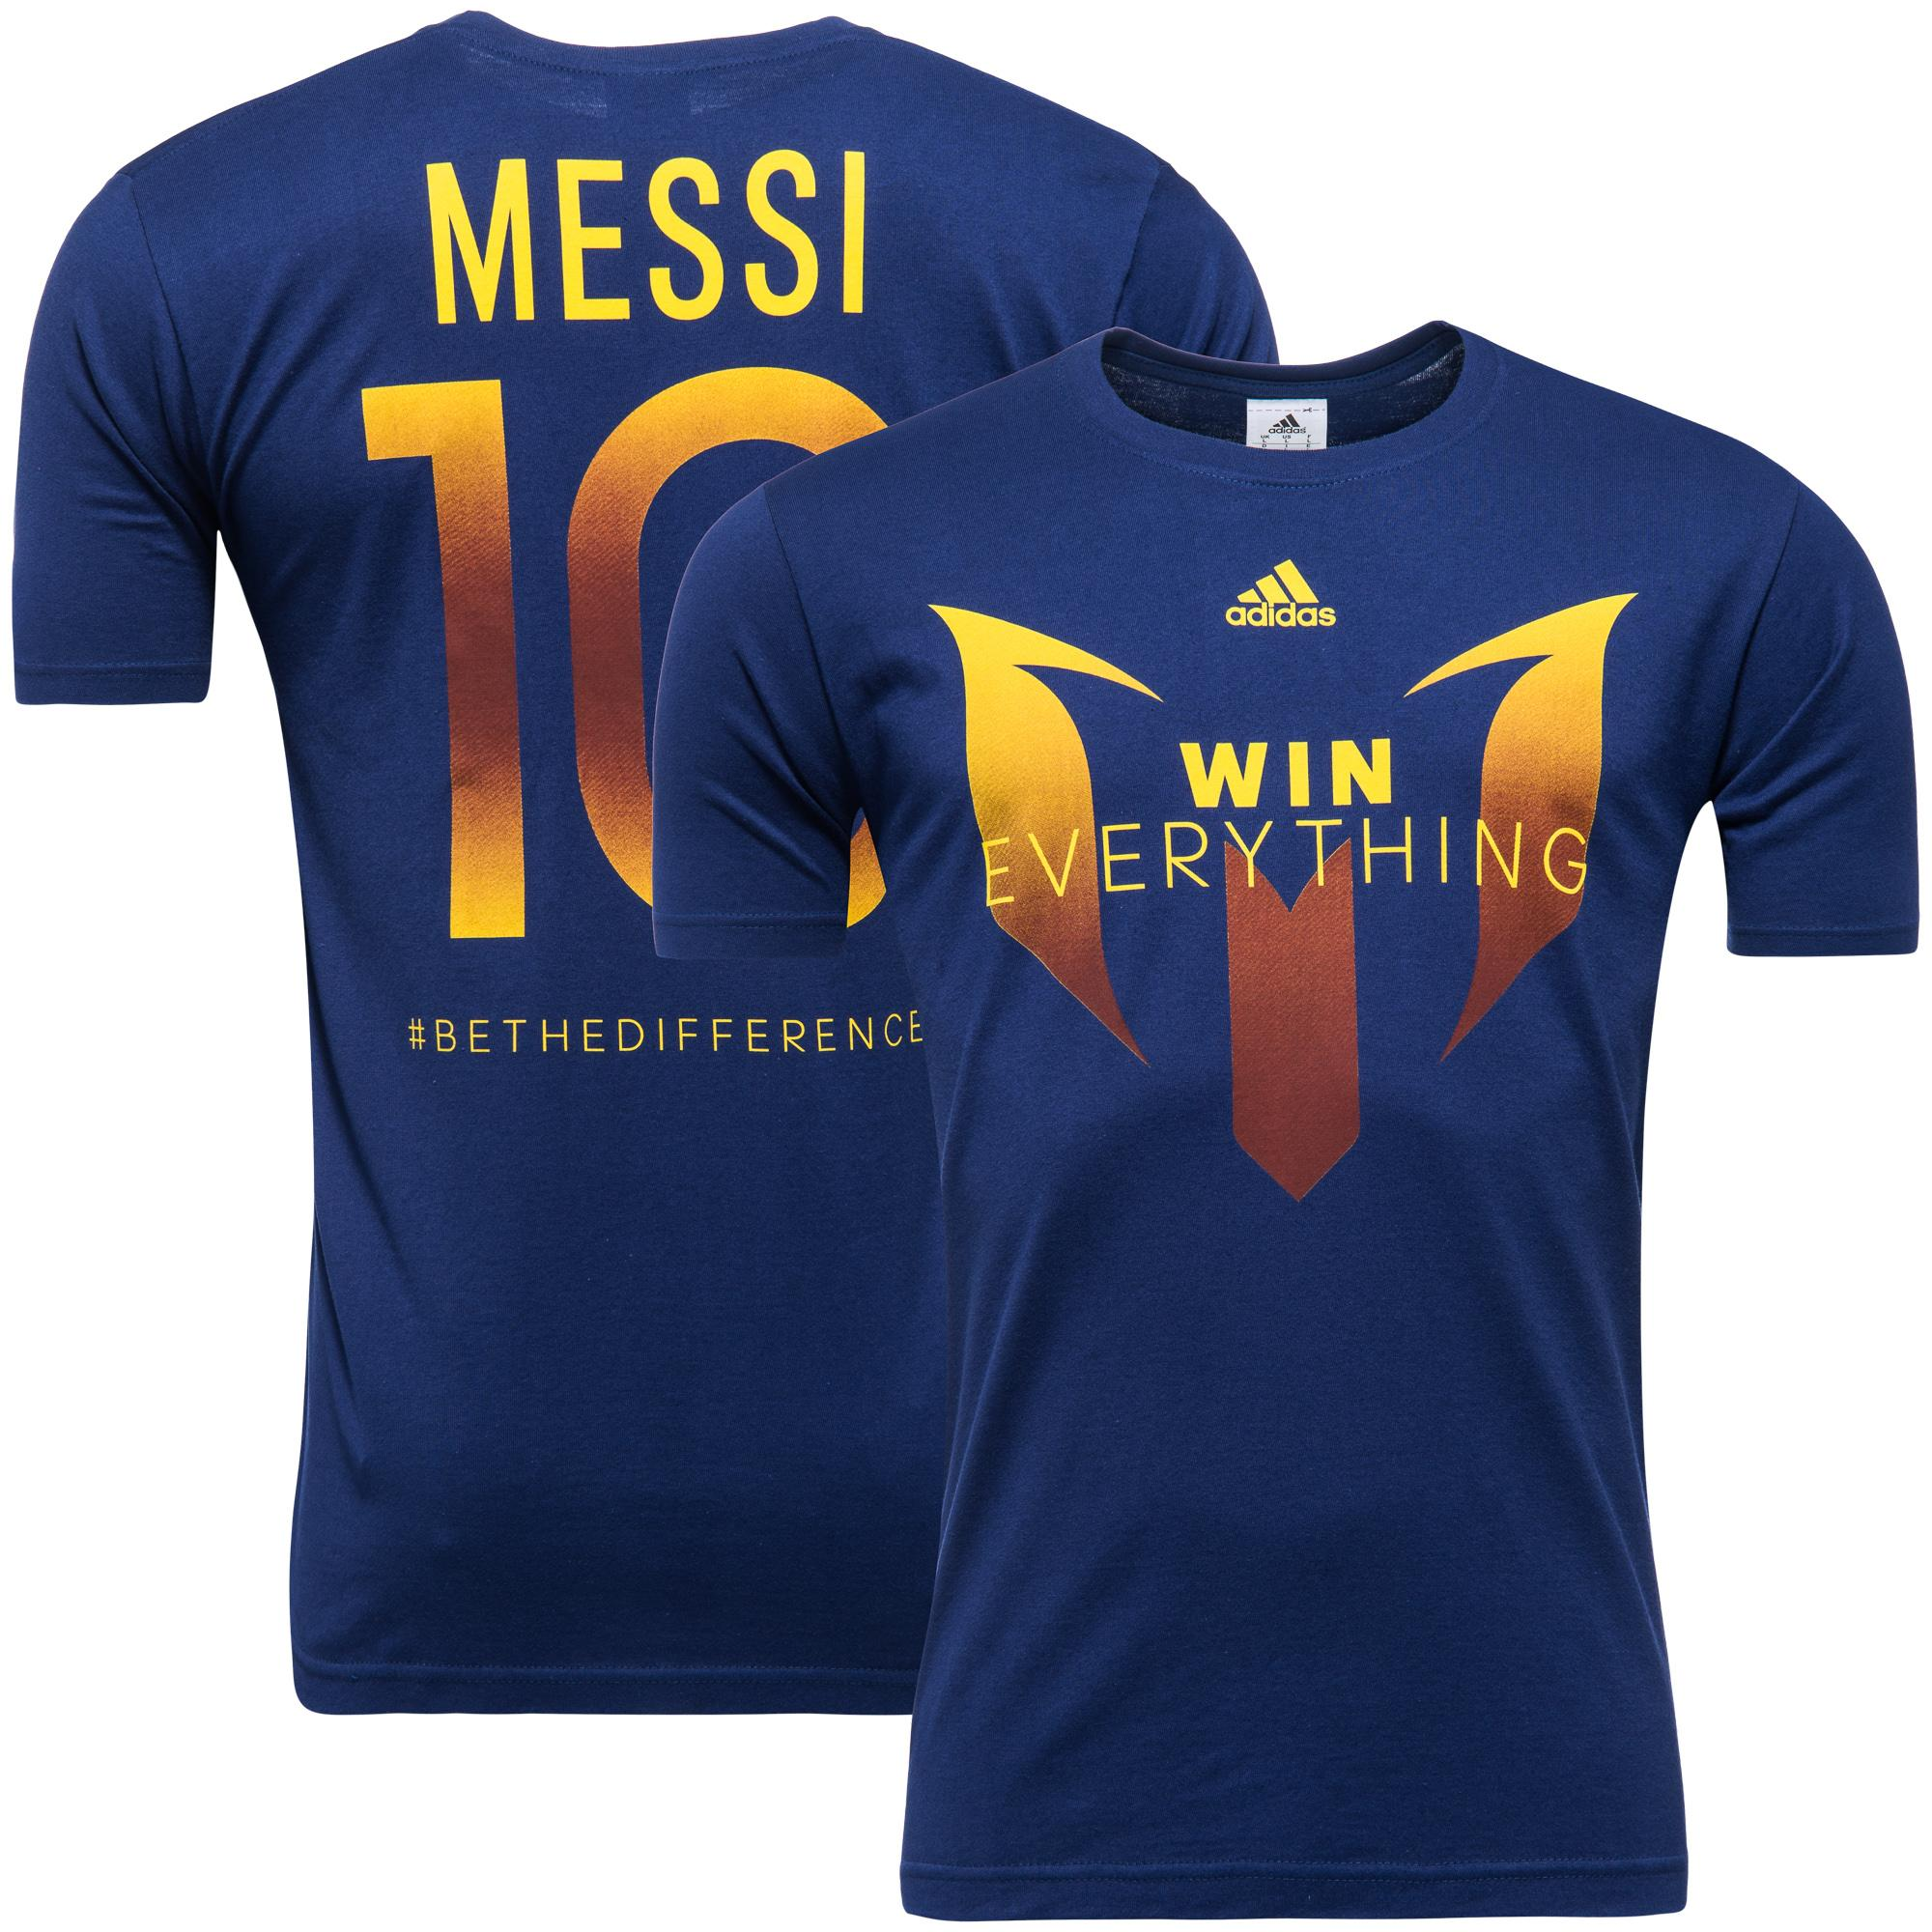 adidas T-Shirt Messi UCL Finale 15 Navy